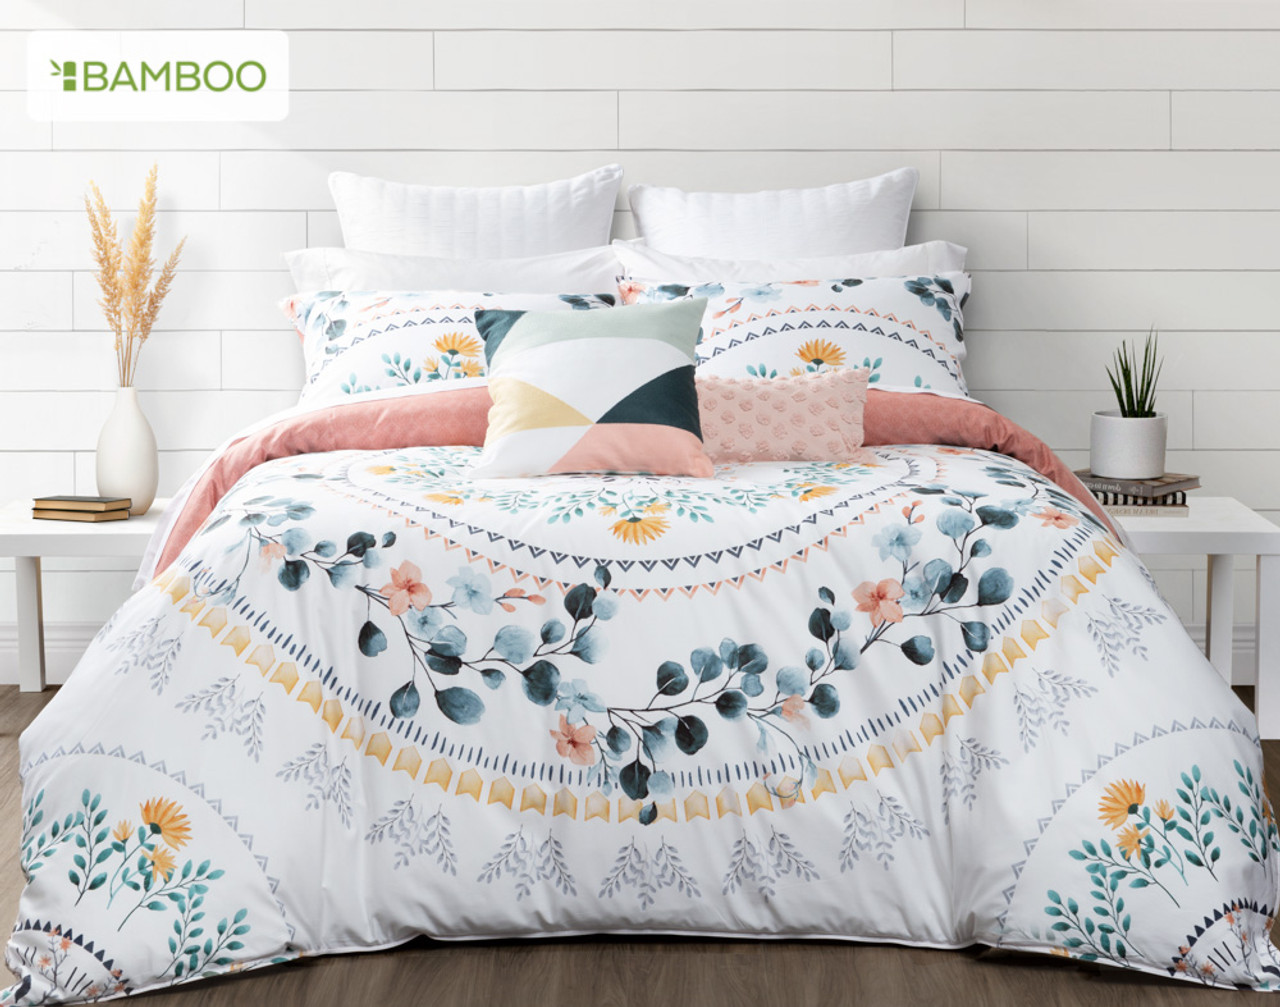 Estelle Bedding Collection features a blushing floral wreath mandala design in teal green, terracotta, blush pink, gold and grey accents.